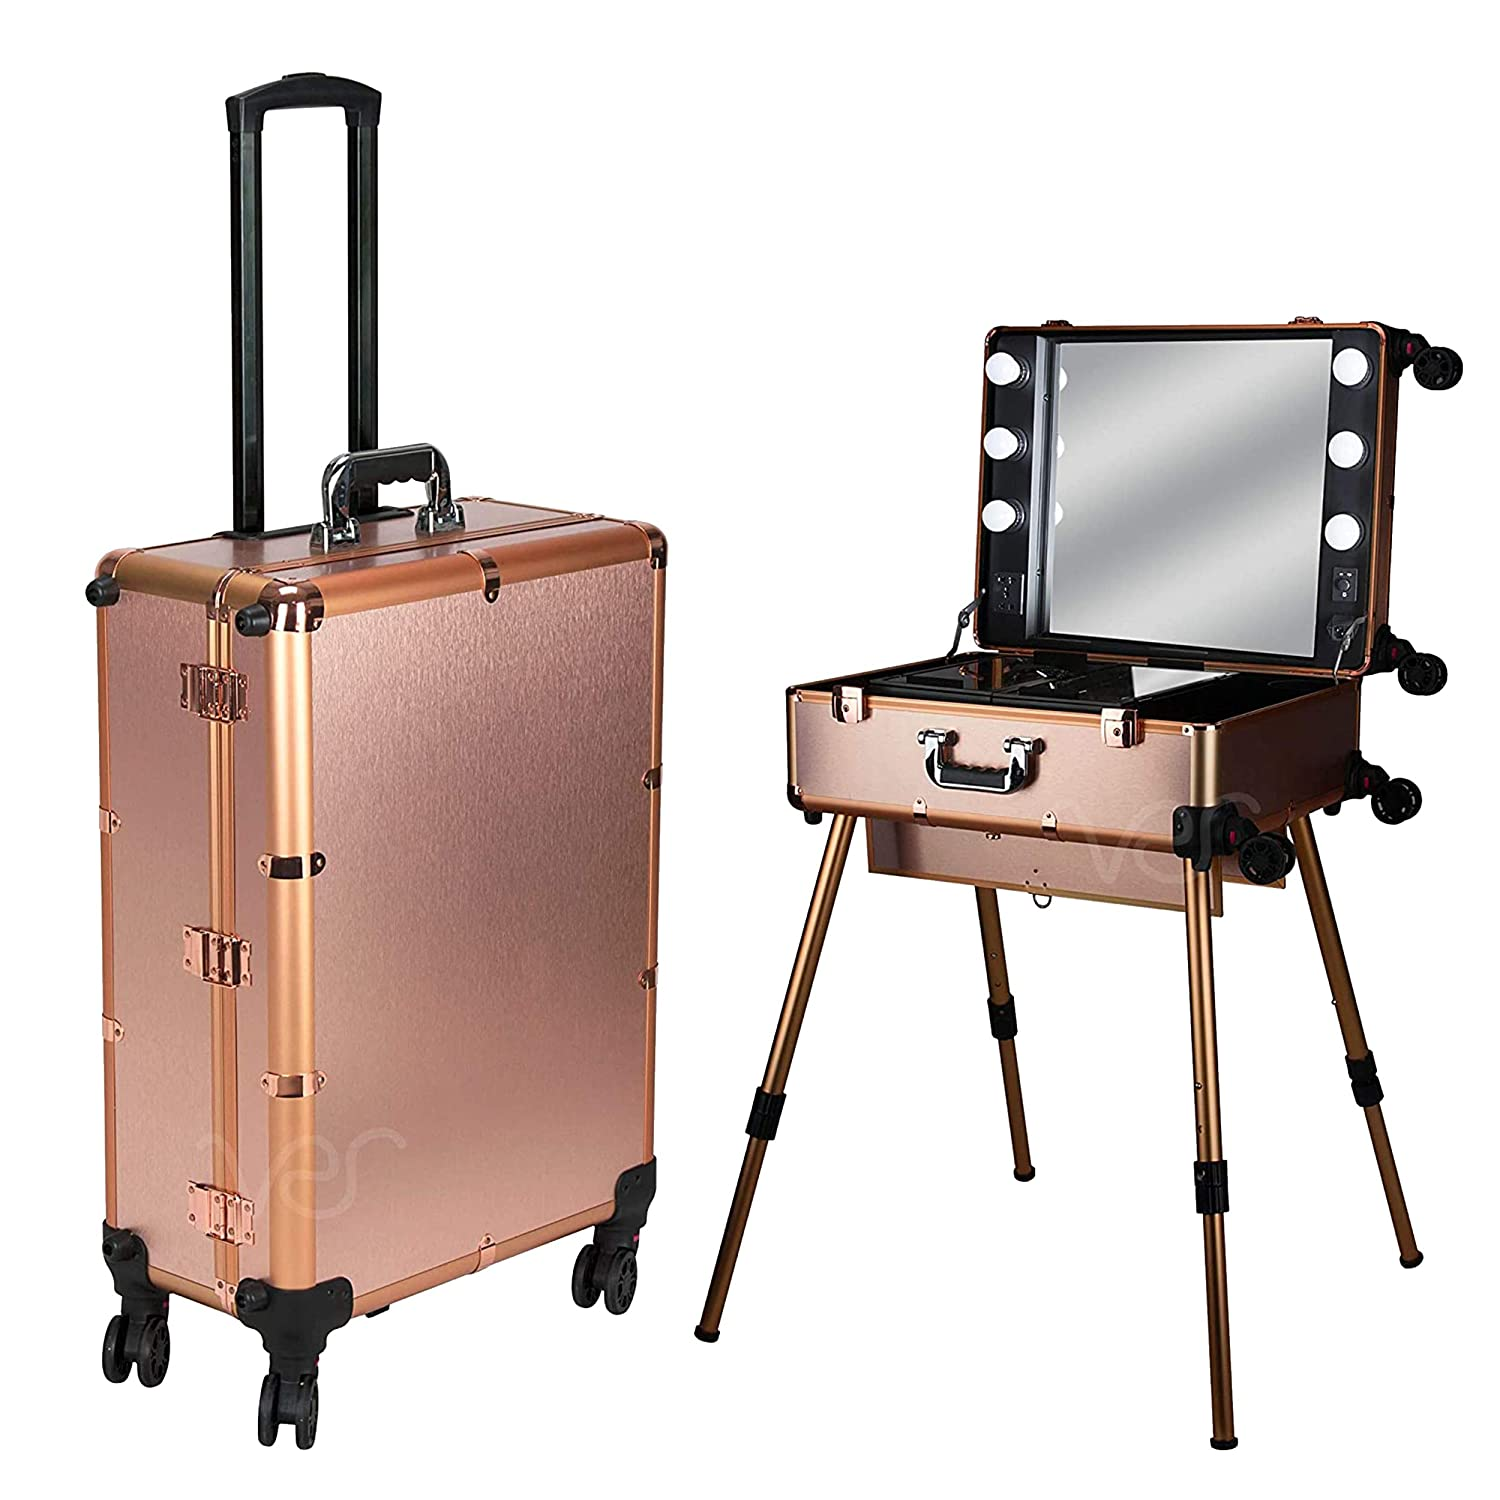 Ver Beauty Professional Rolling Hair Stylist Makeup Studio & Makeup Artist Travel Case with 6 LED Lights, Rose Gold